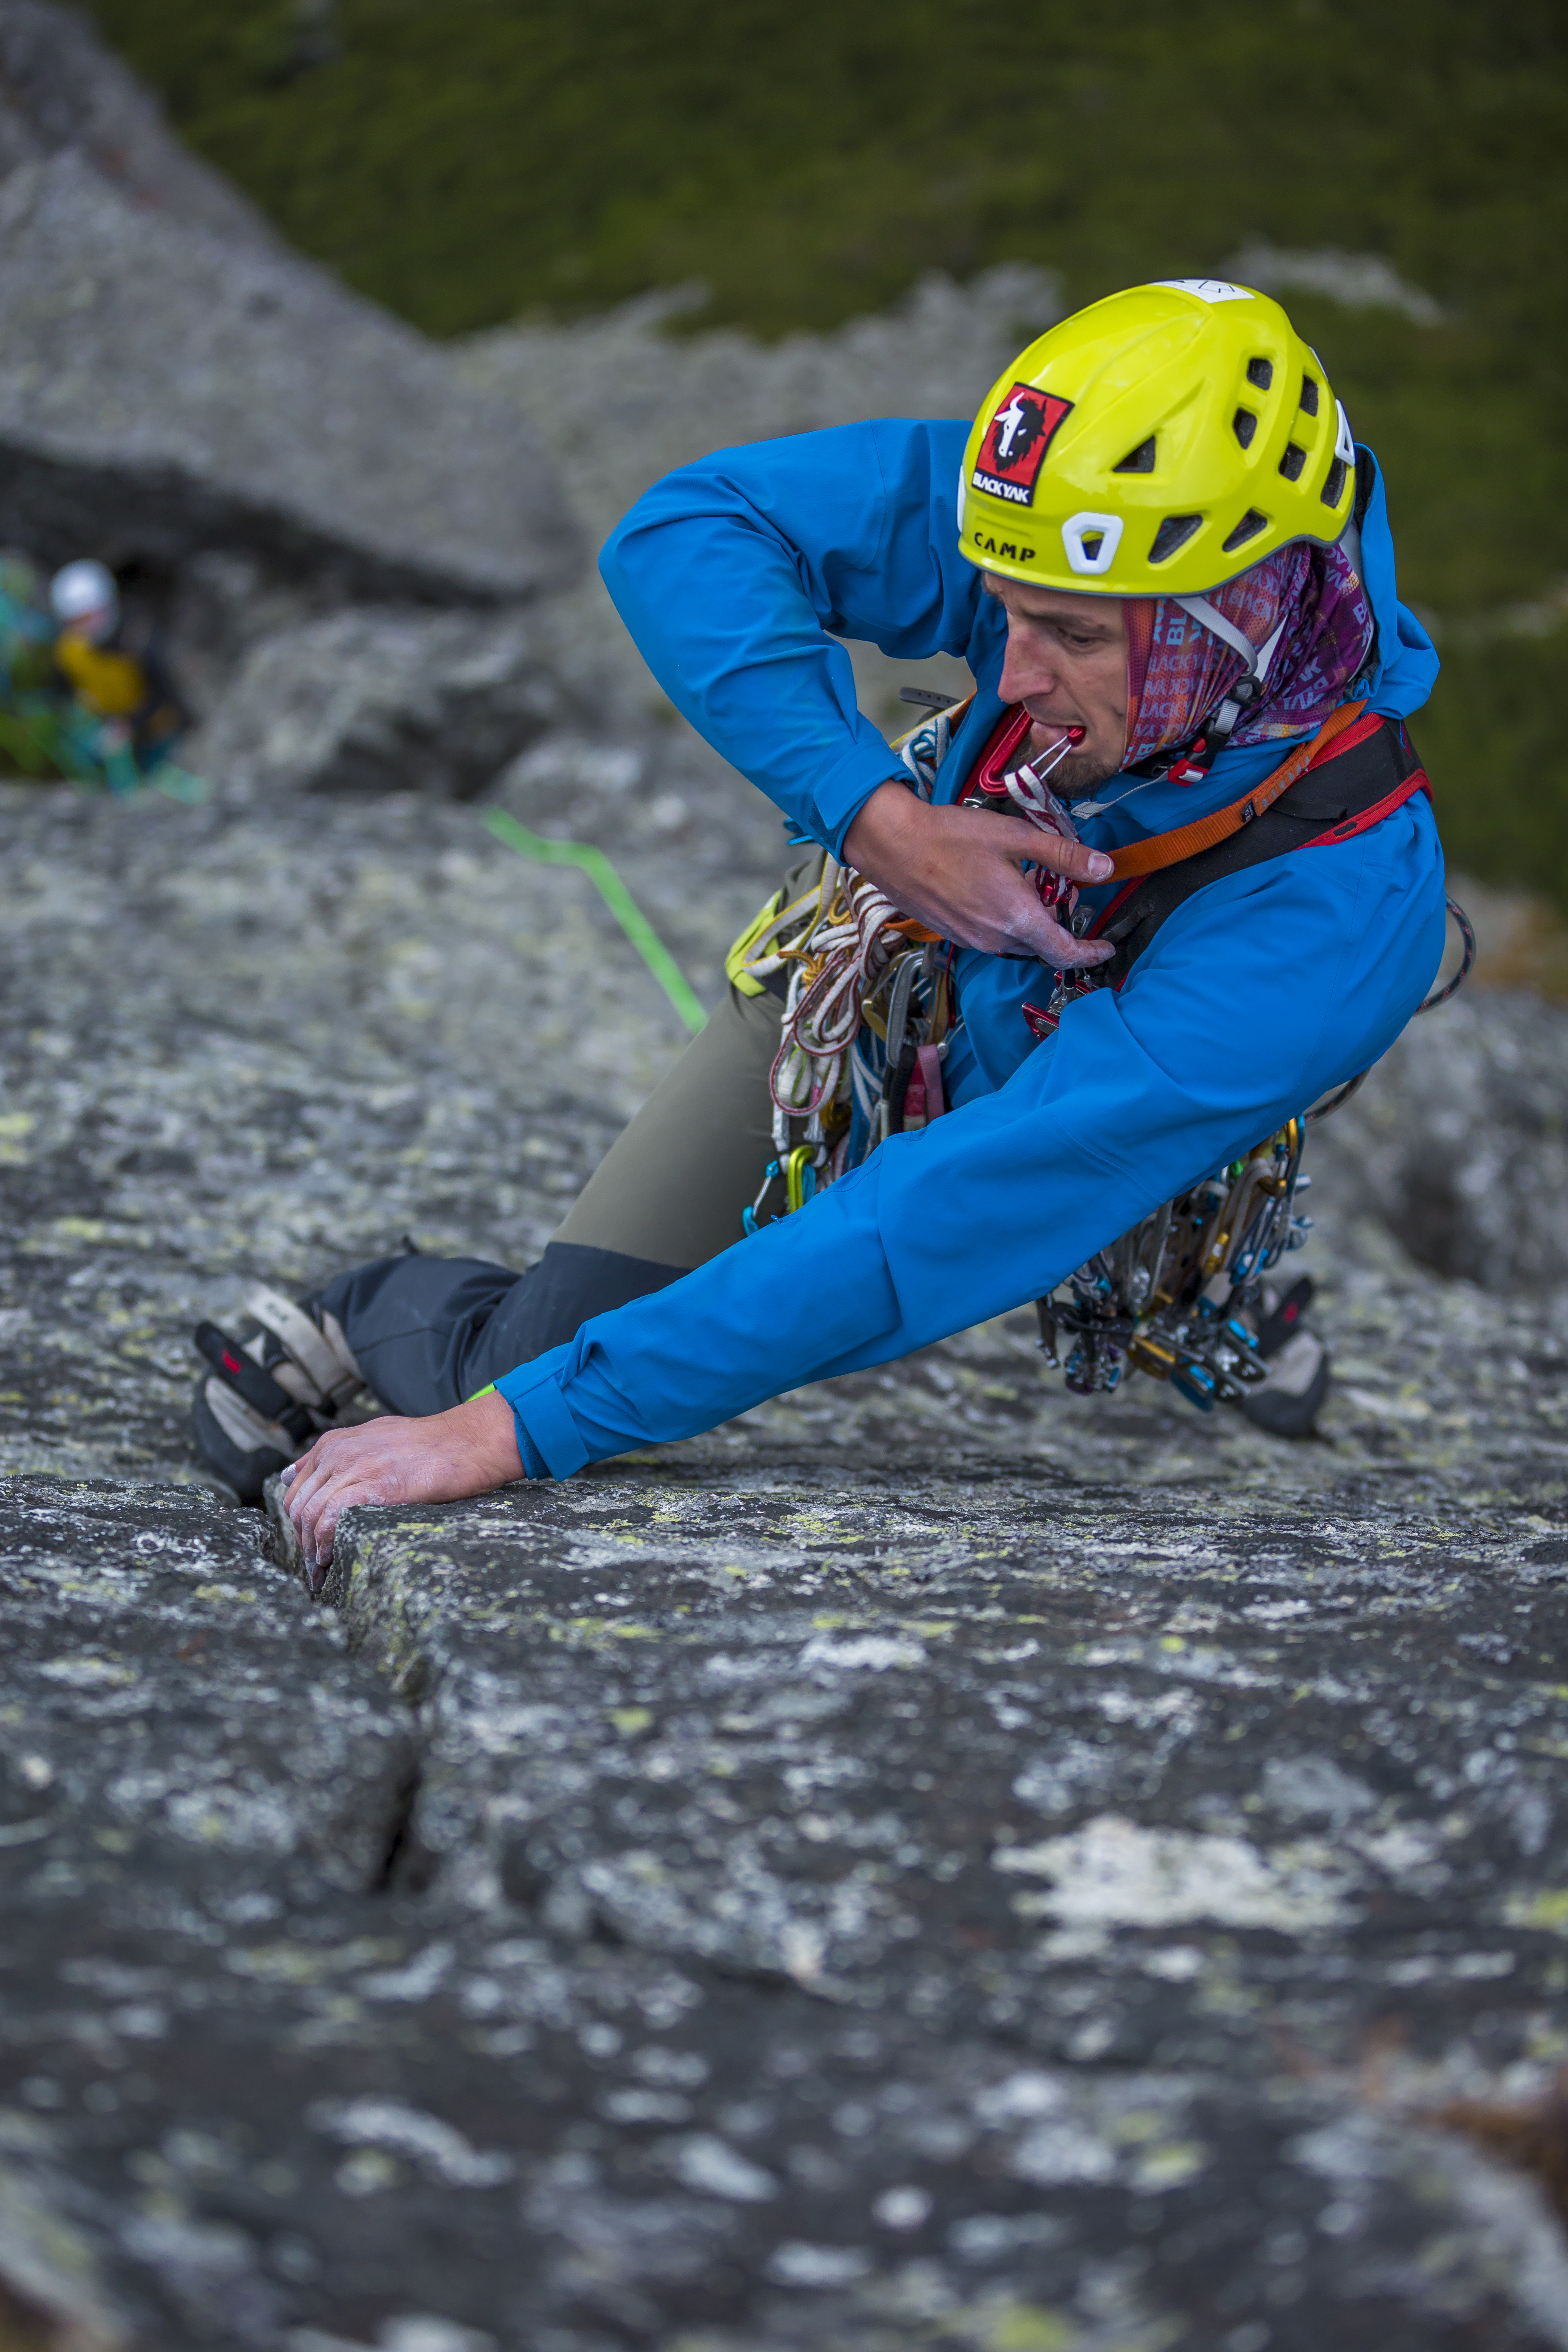 Bielecki on a classic climbing route in the Tatras